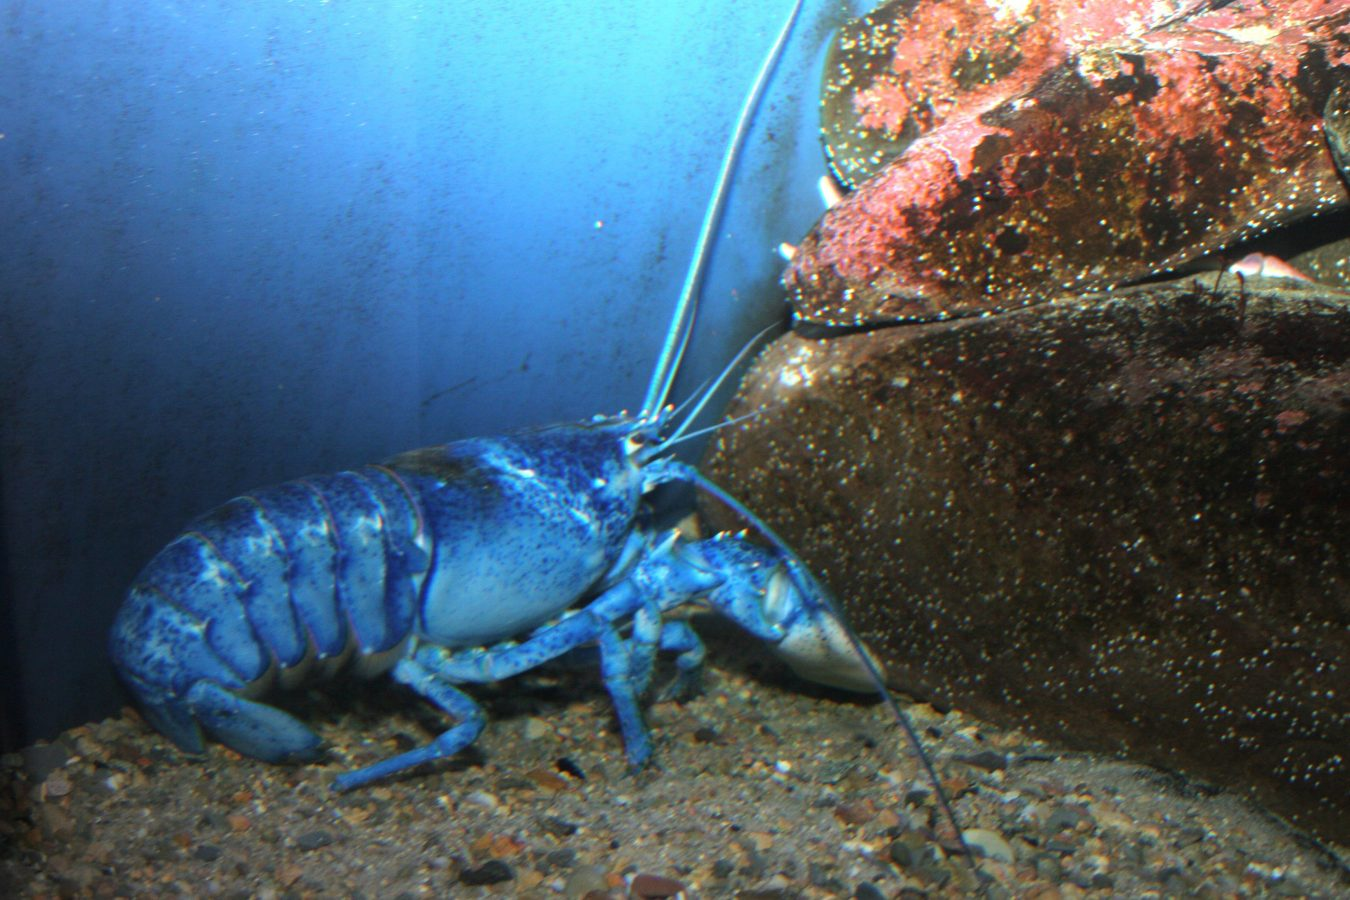 blue lobster walks along rocks and sand underwater